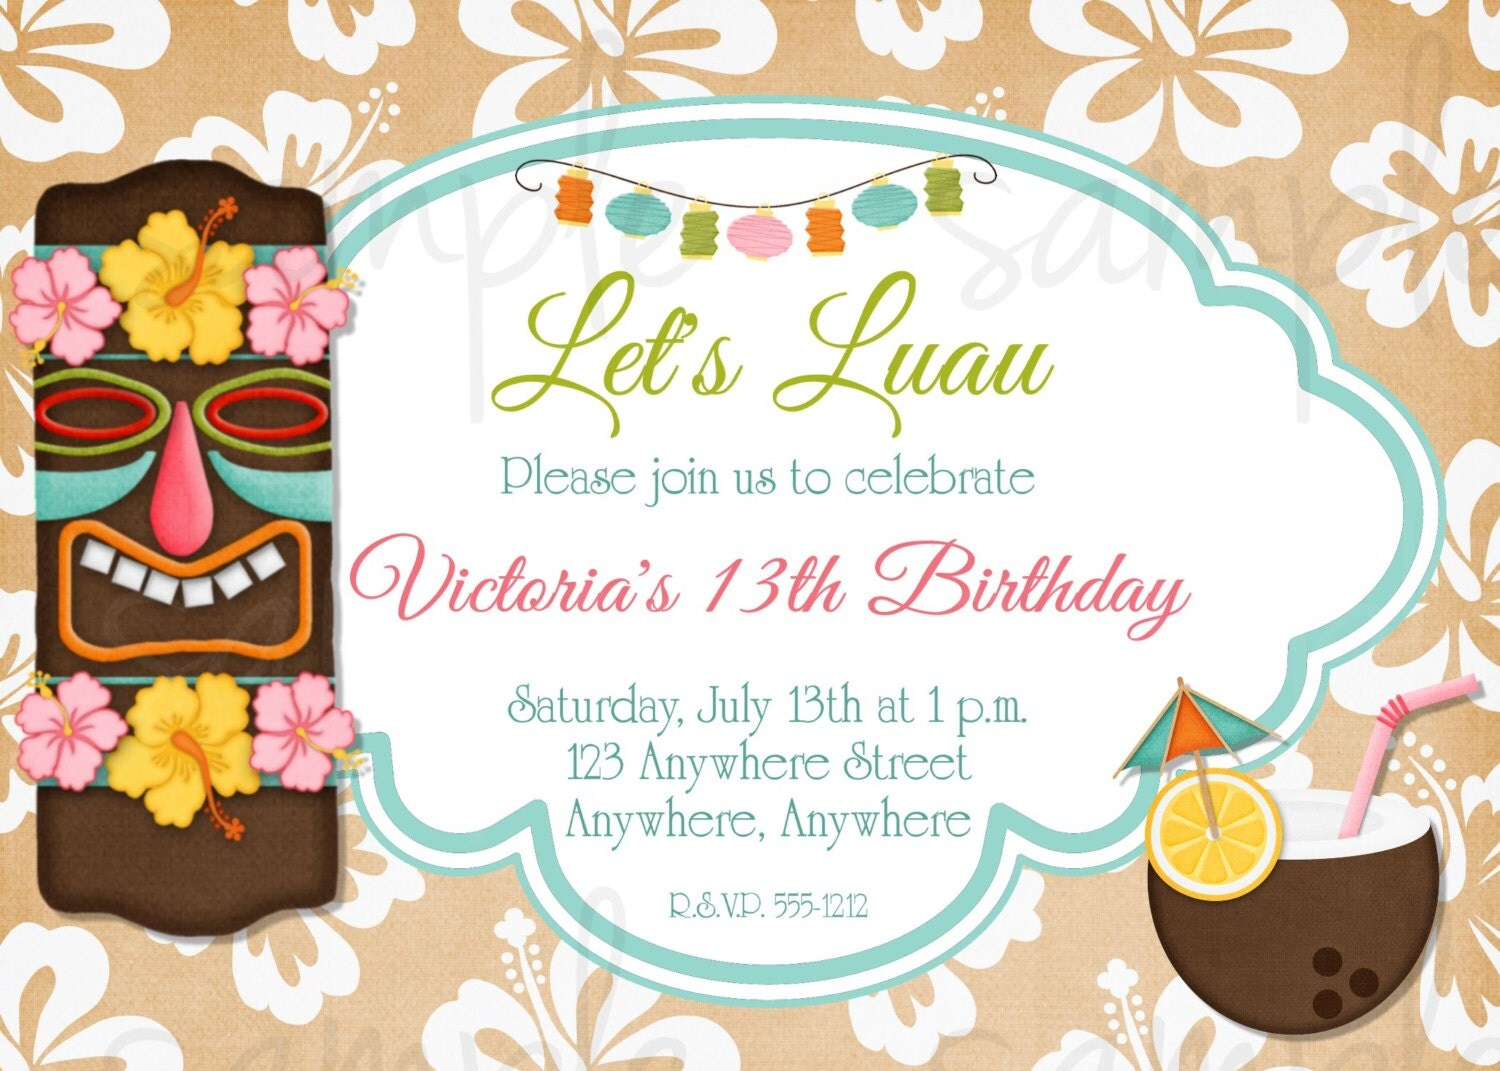 Luau Birthday Party Invitations correctly perfect ideas for your invitation layout